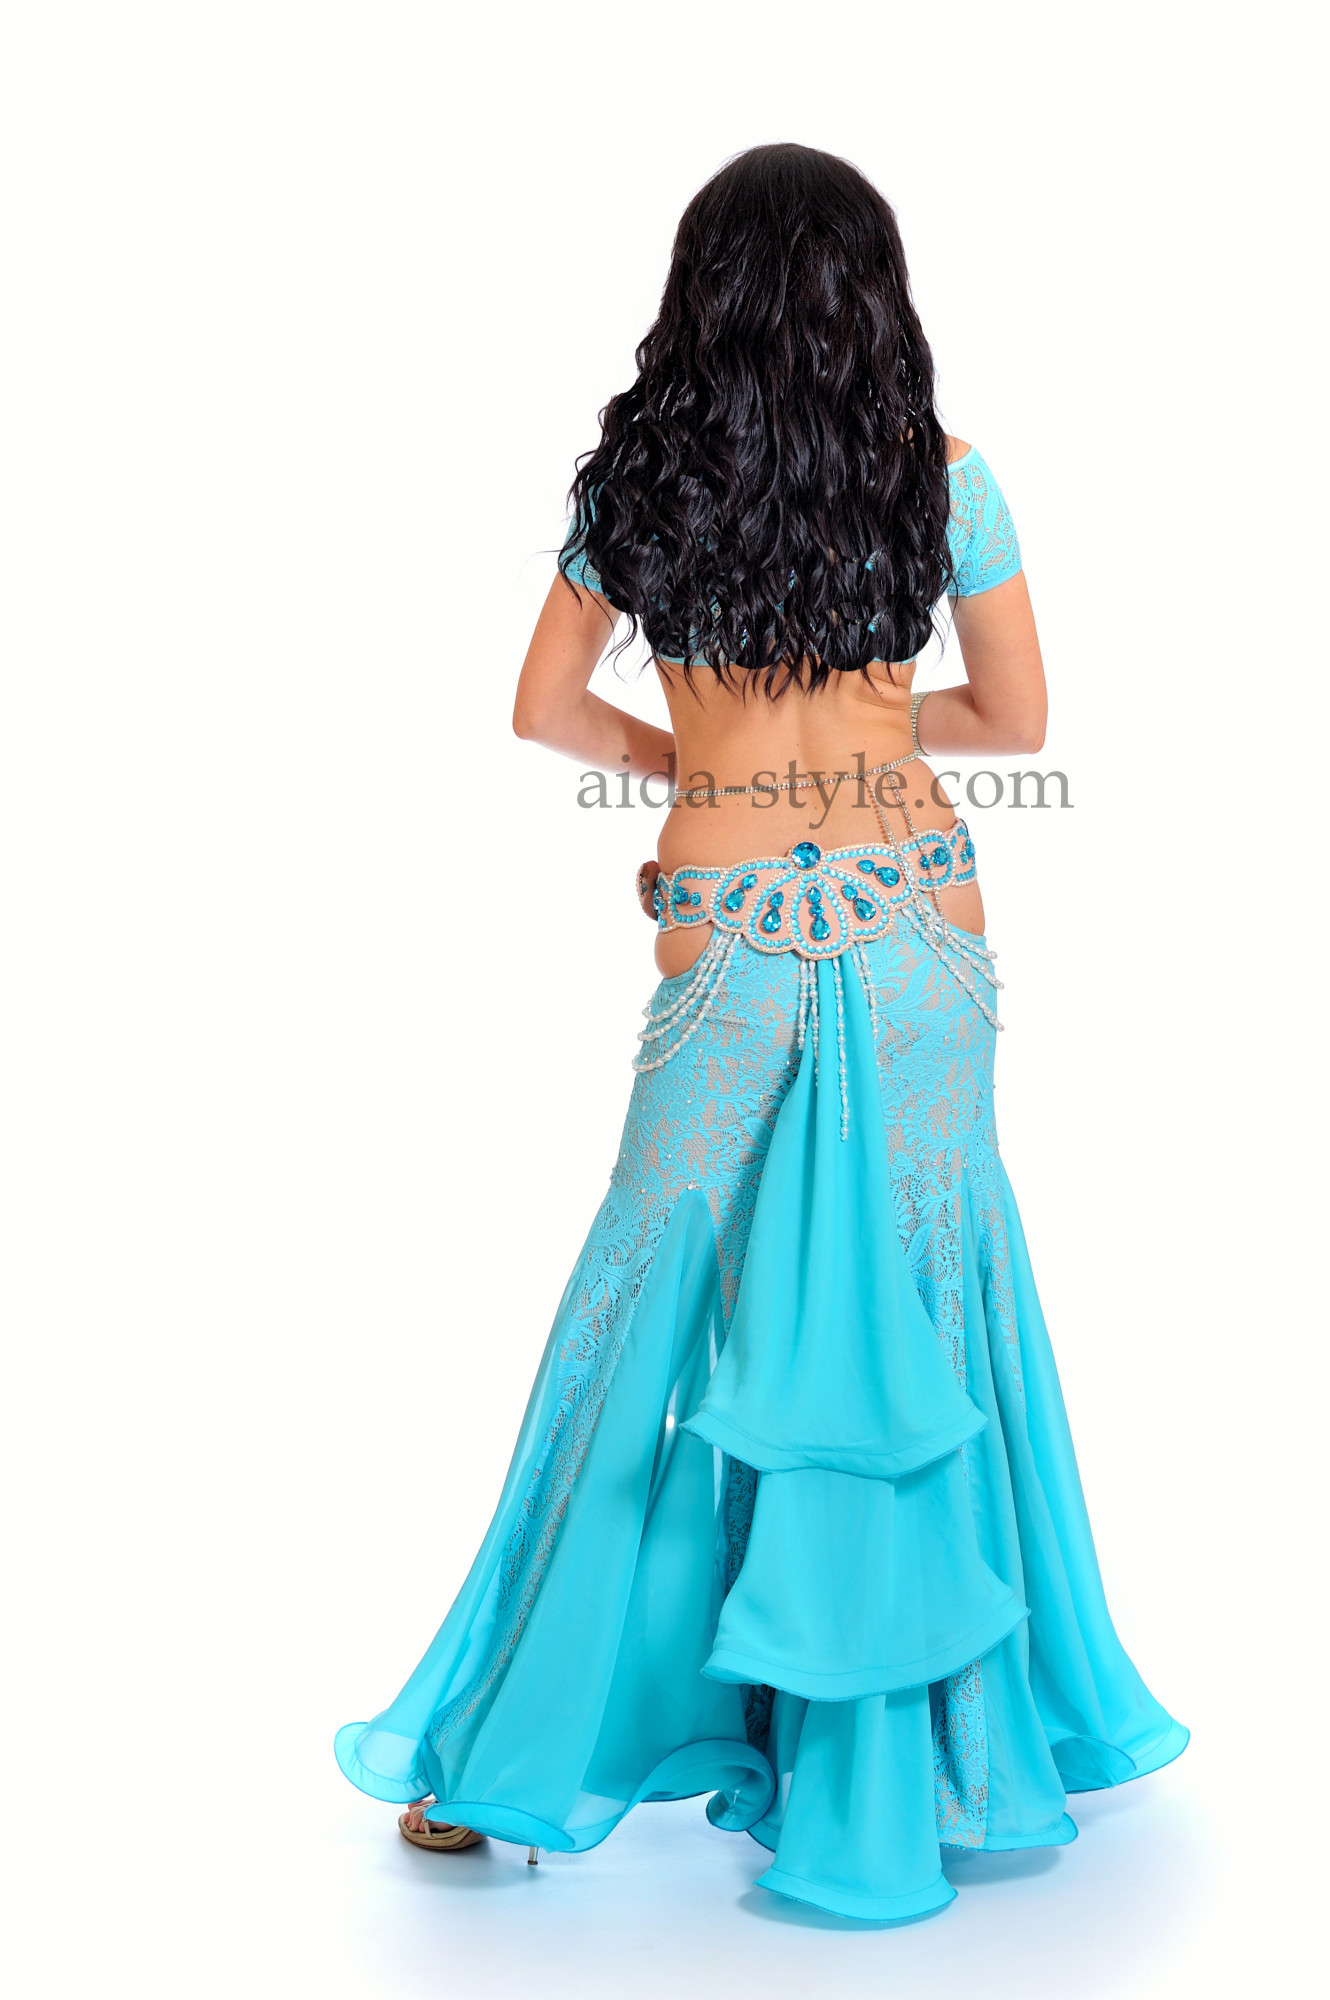 Blue professional belly dance dress